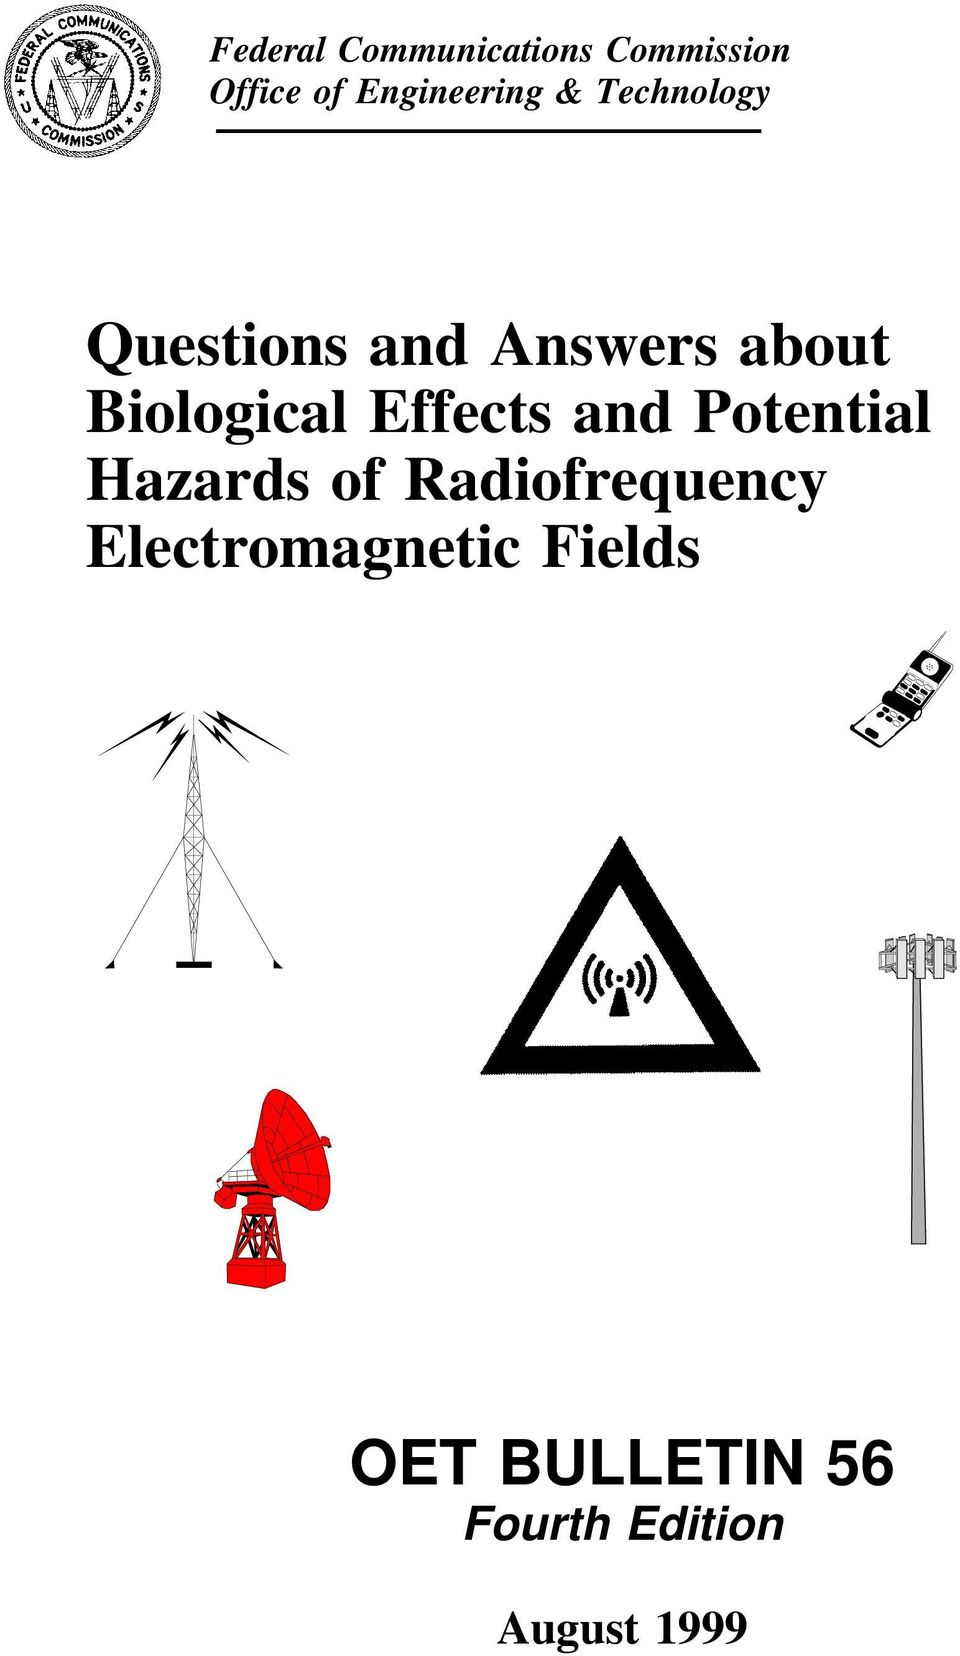 Effects and Potential Hazards of Radiofrequency